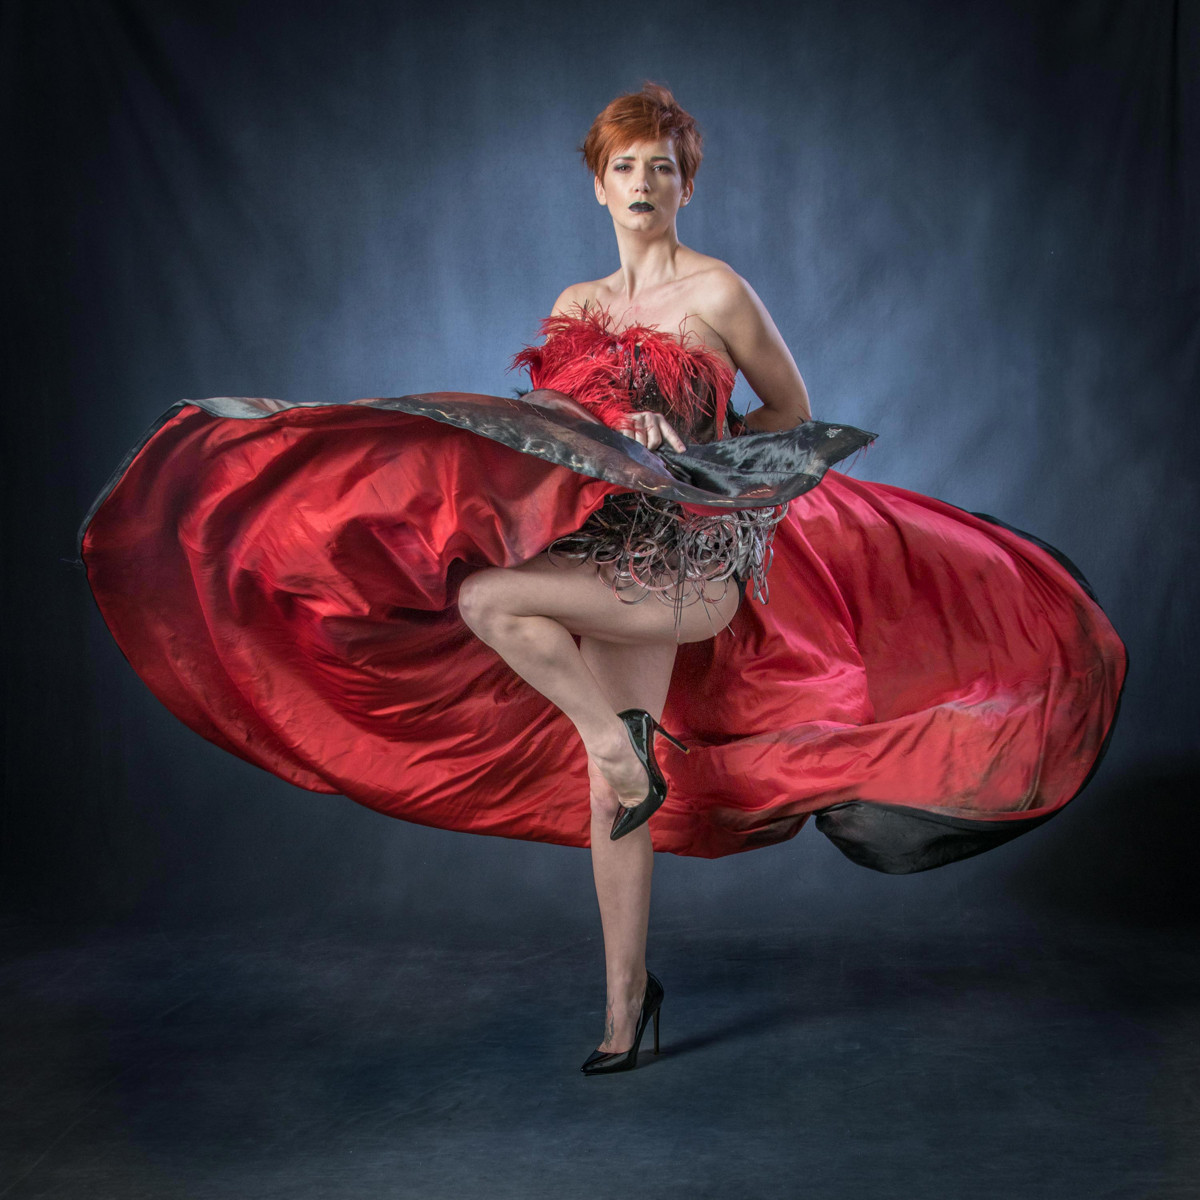 COLOUR - Red Dress by Frances Price (11 marks)